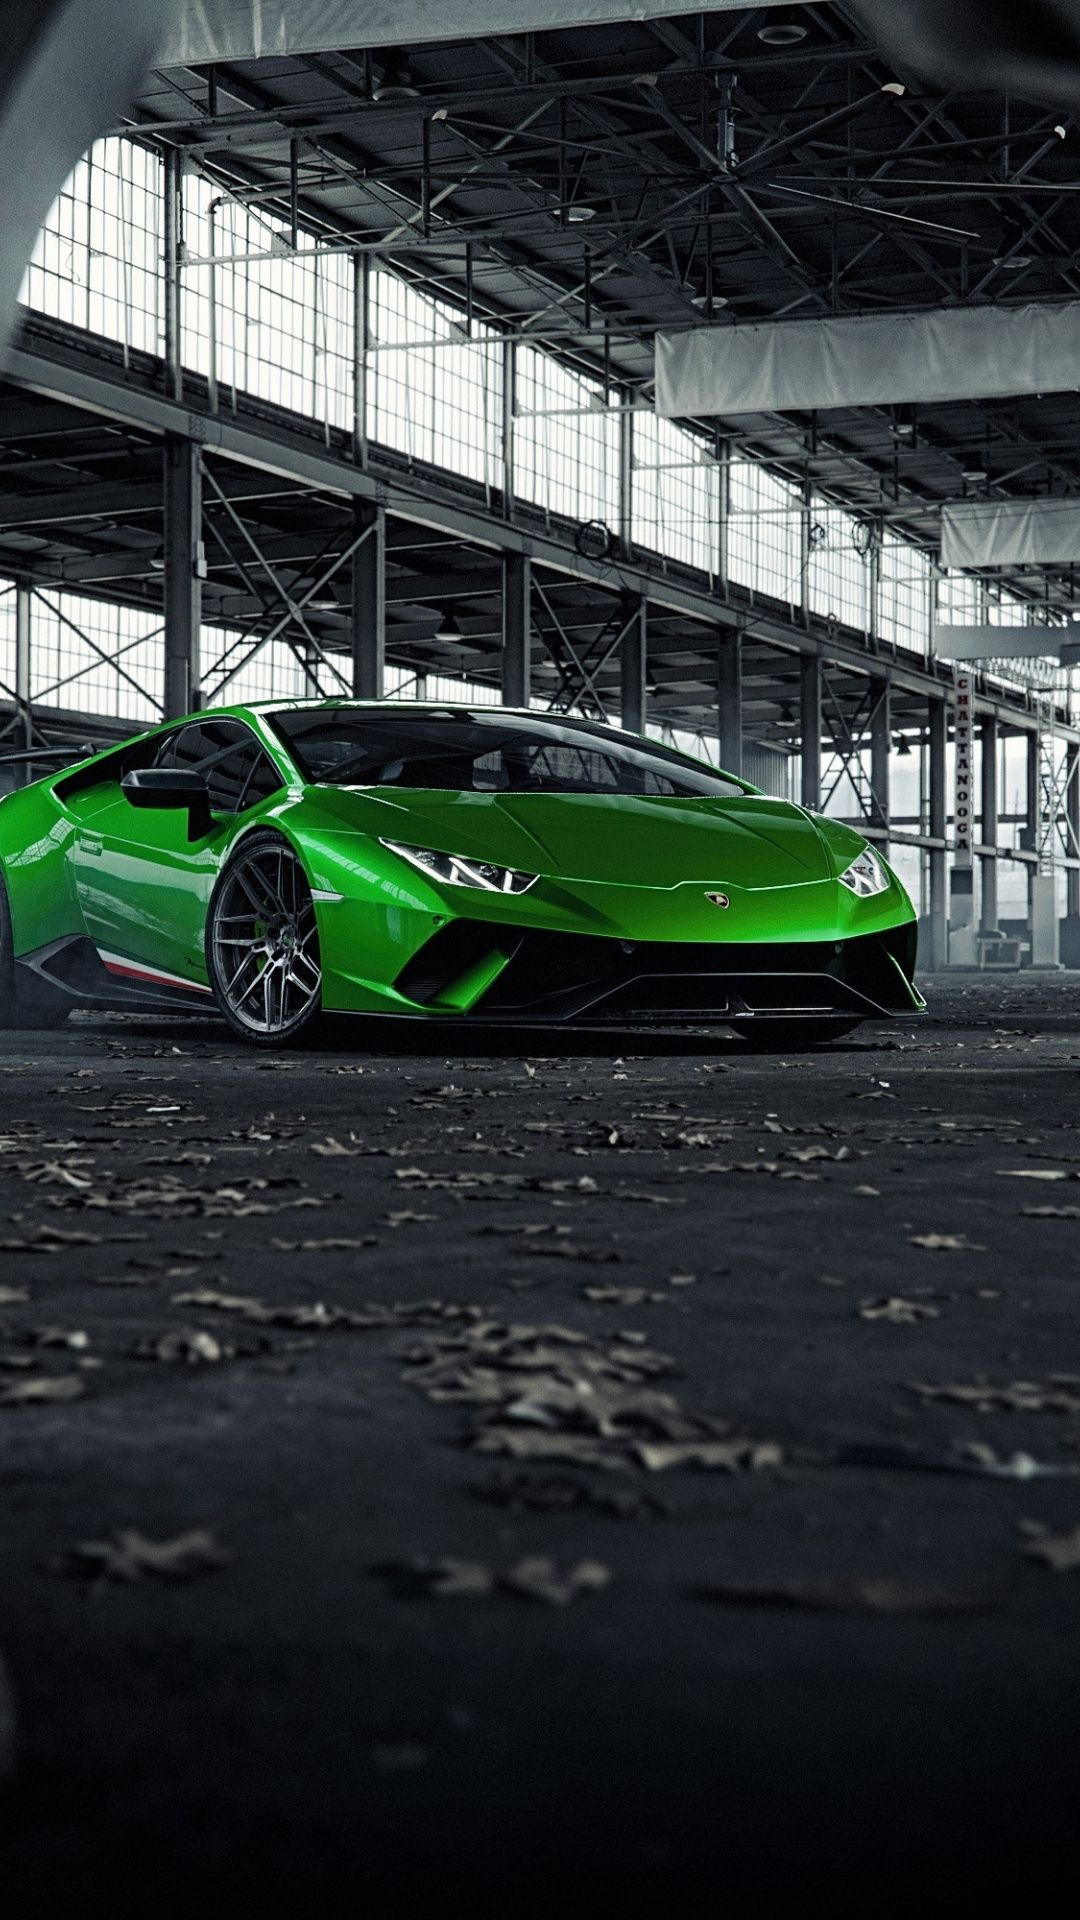 1080x1920 Green Lamborghini Huracan Sports Car Wallpaper Green Lamborghini Lamborghini Huracan Car Wallpapers